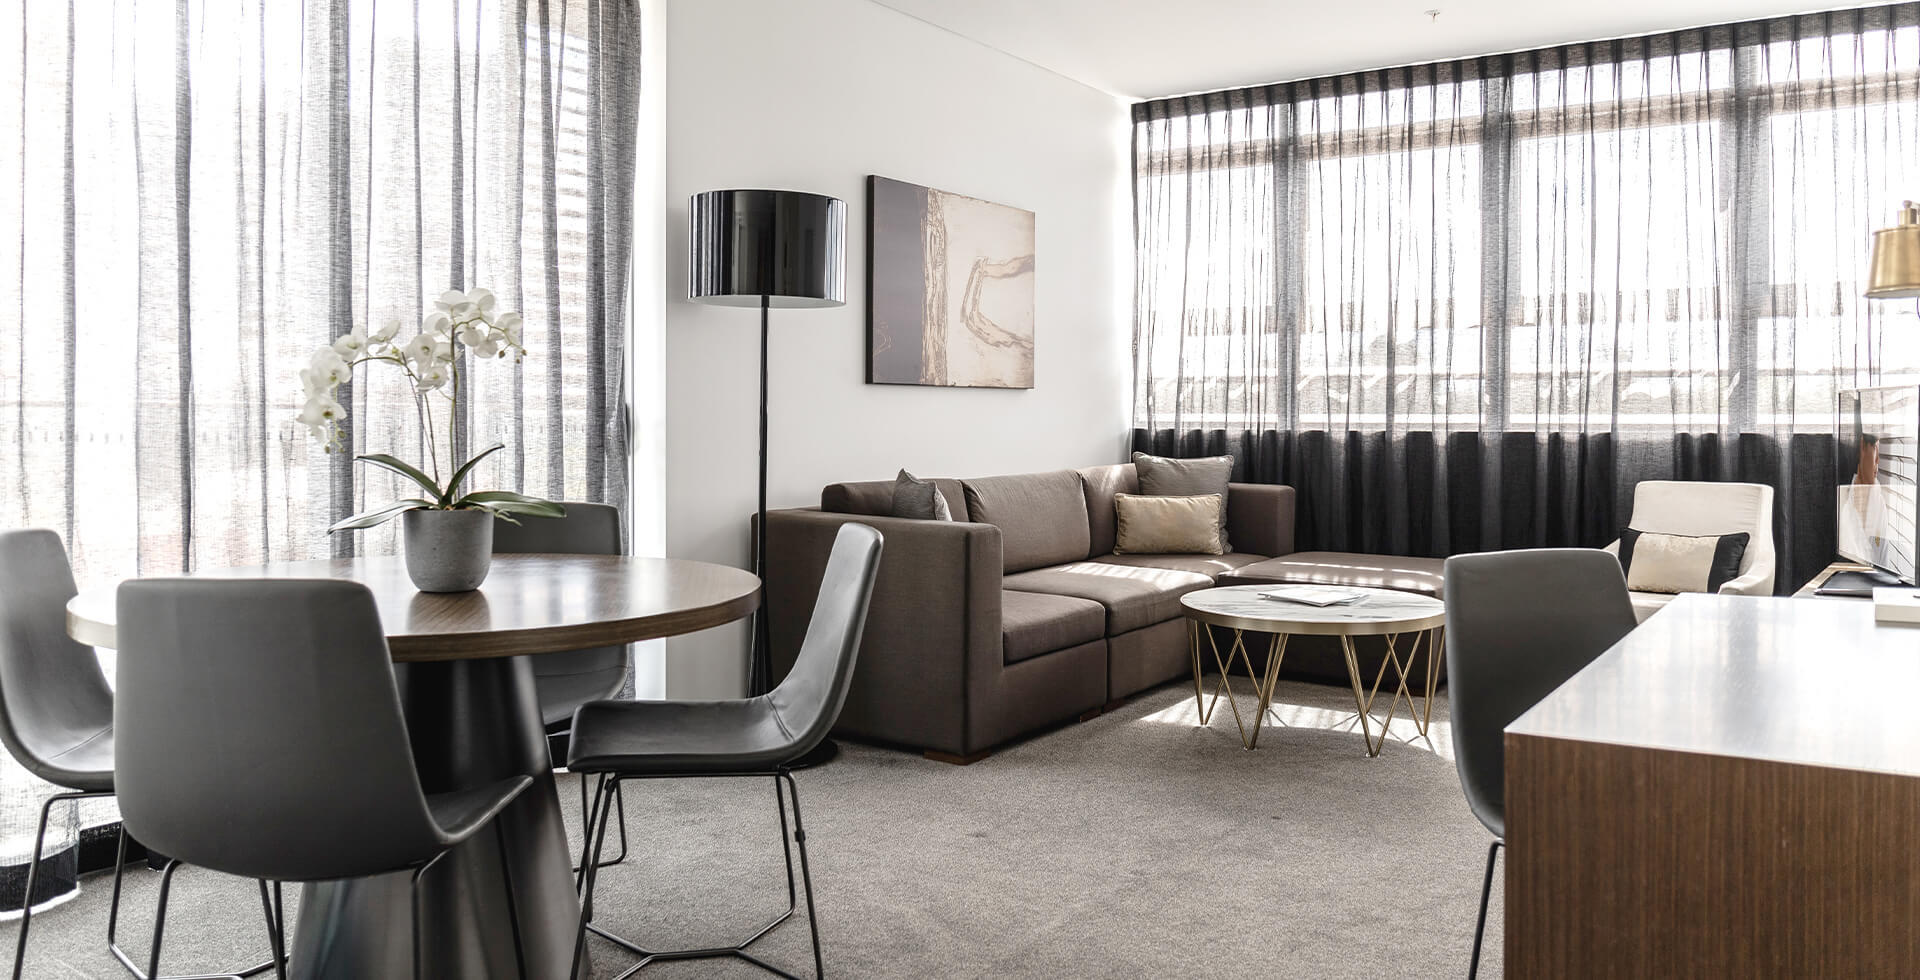 Living Room at Silkari Suites at Chatswood Apartments